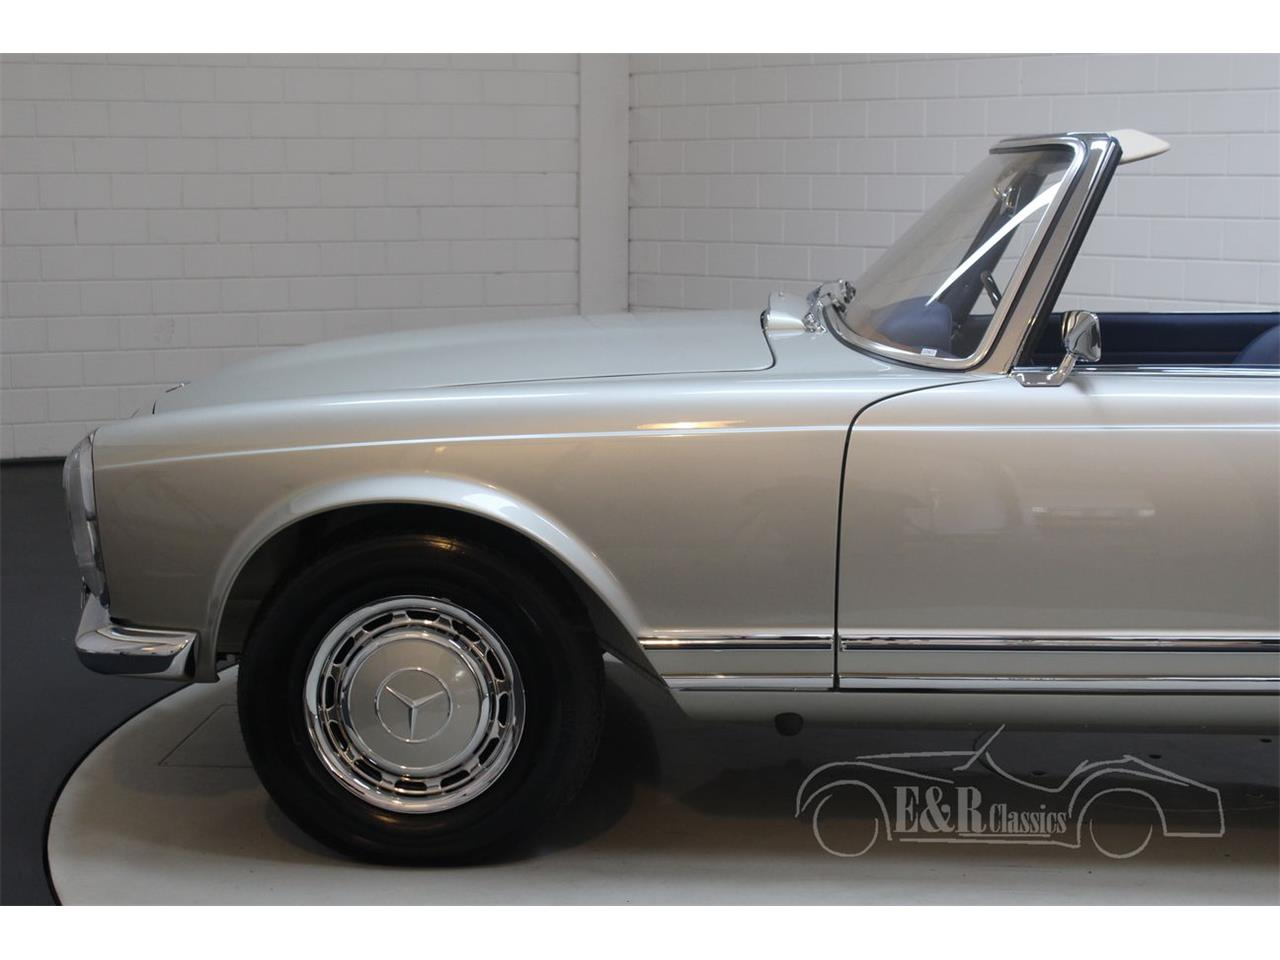 Large Picture of 1969 Mercedes-Benz 280SL located in noord brabant - $190,500.00 - Q9A0